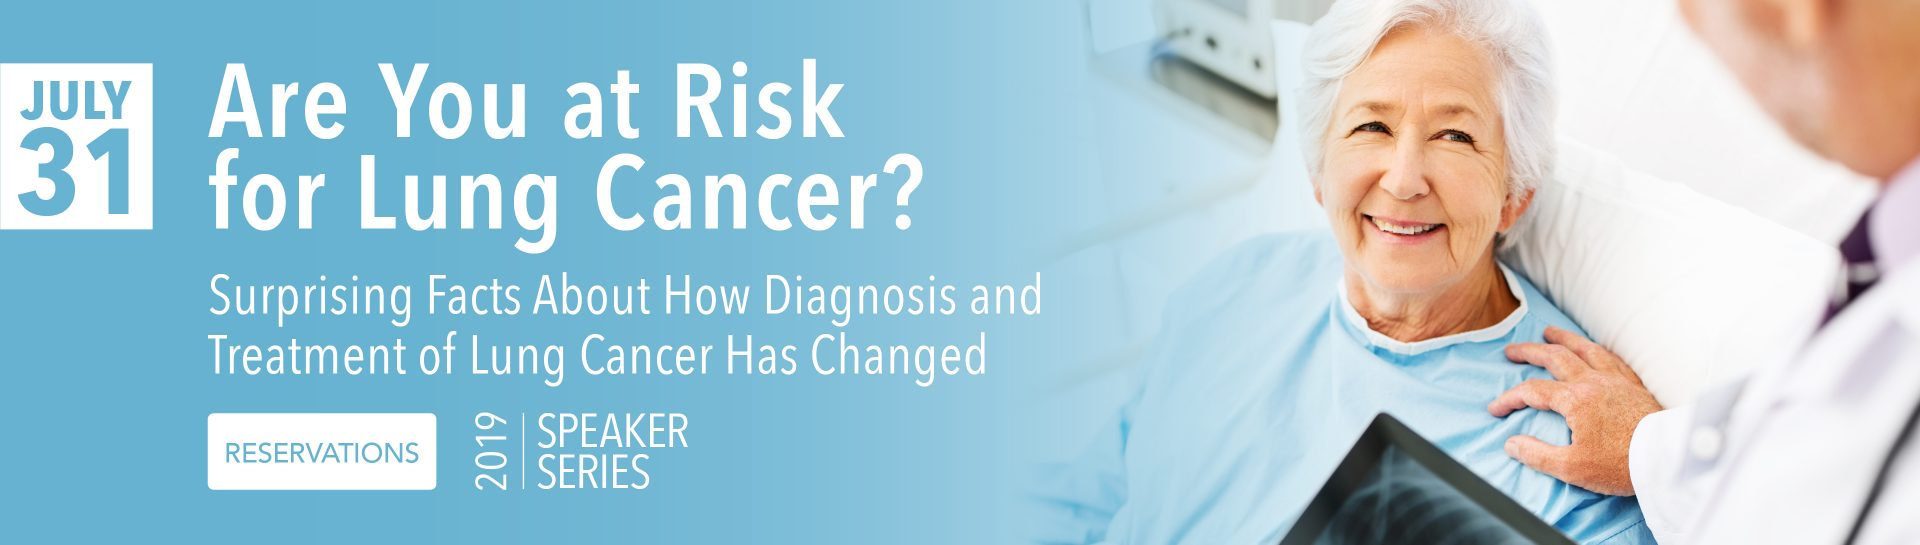 Are you at risk for lung cancer? Come learn surprising facts about how diagnosis and treatment have changed.